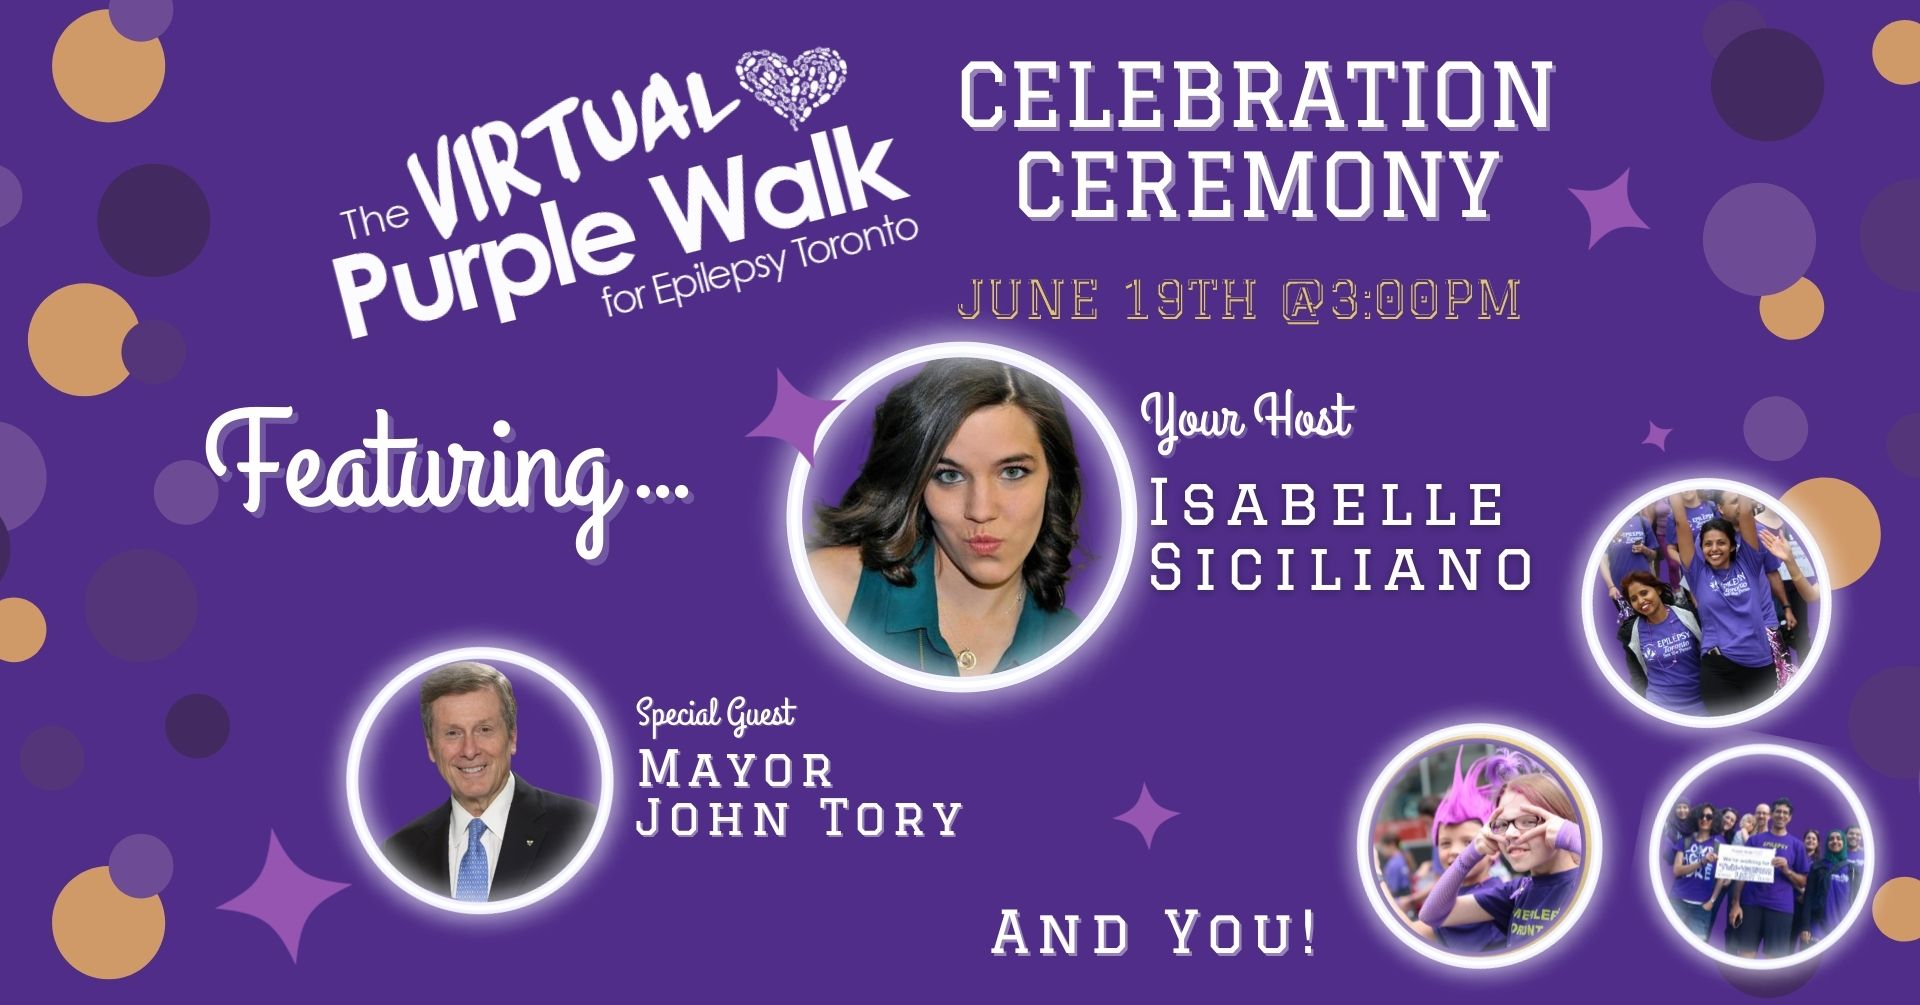 host Isabelle Siciliano, special guest Mayor John Tory and past walk participants